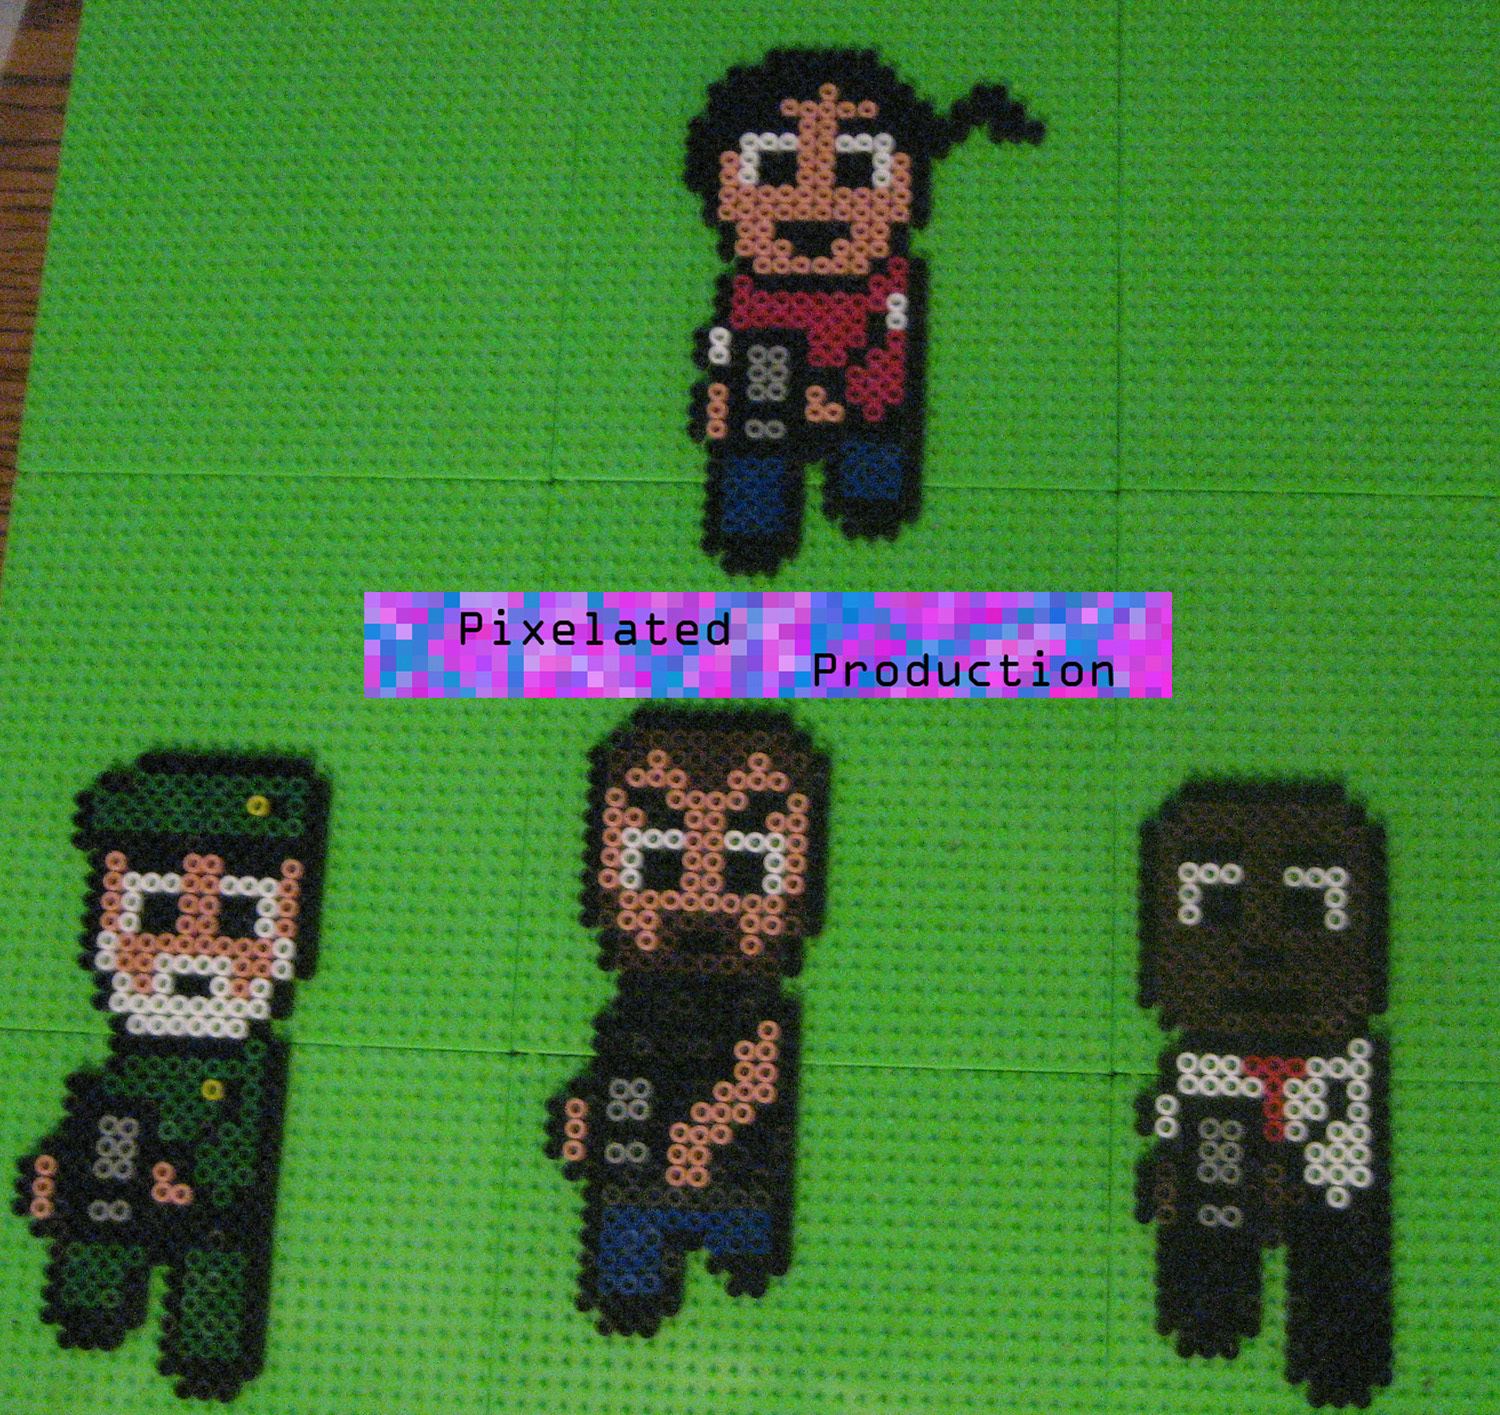 L4D Bead Art door Pixelated Production